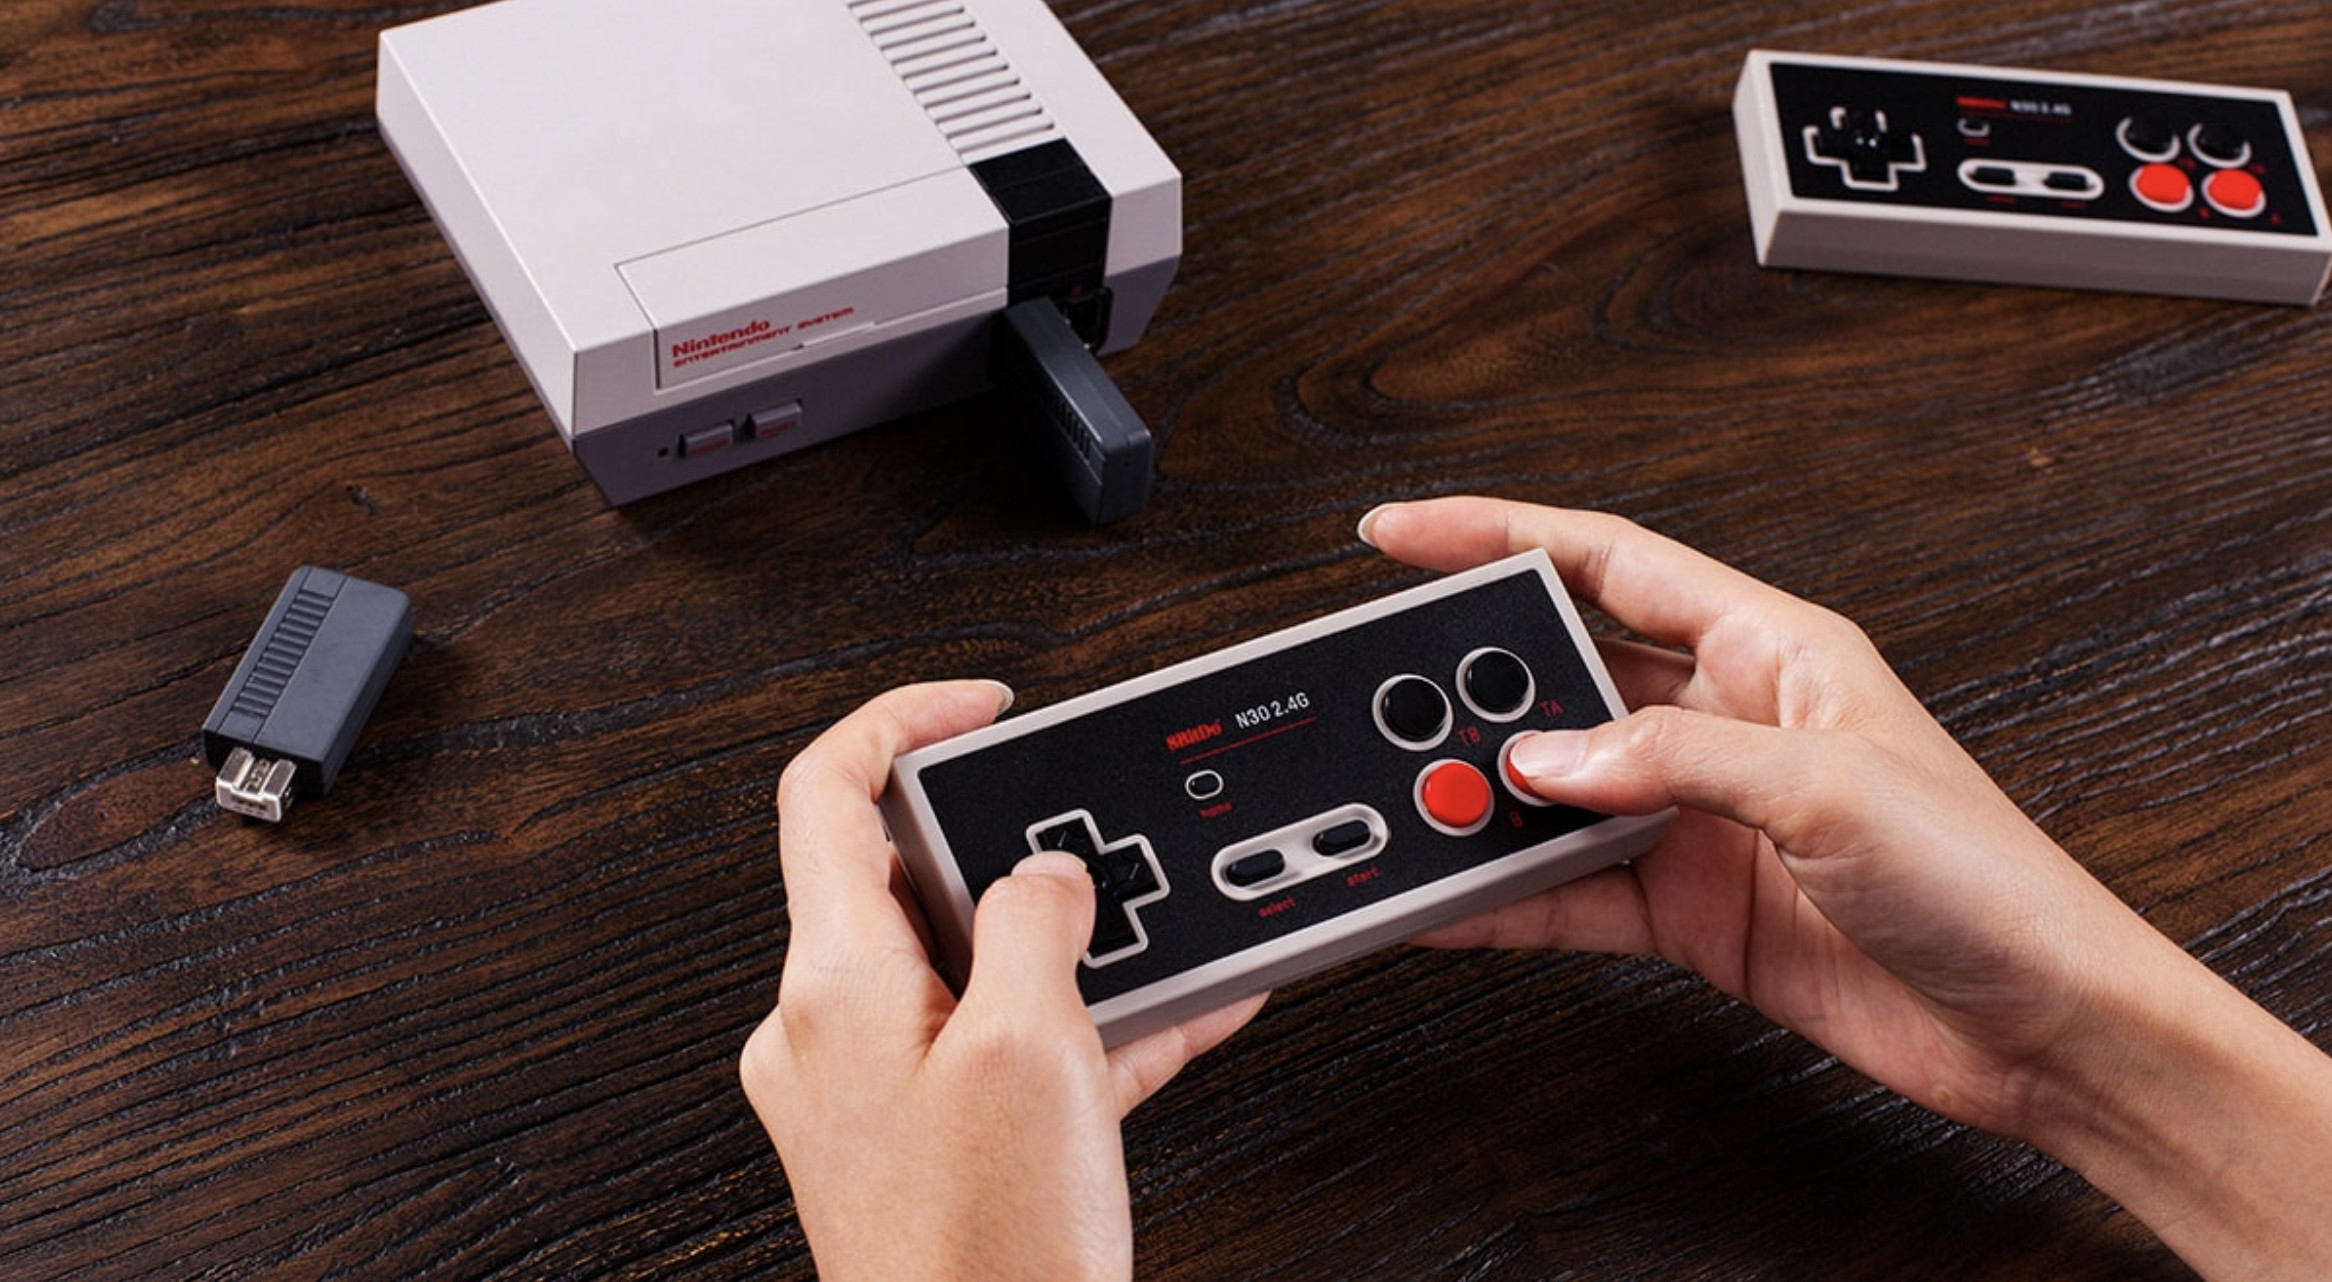 Nintendo's NES Classic Returns Today, And With A Wireless Controller Option